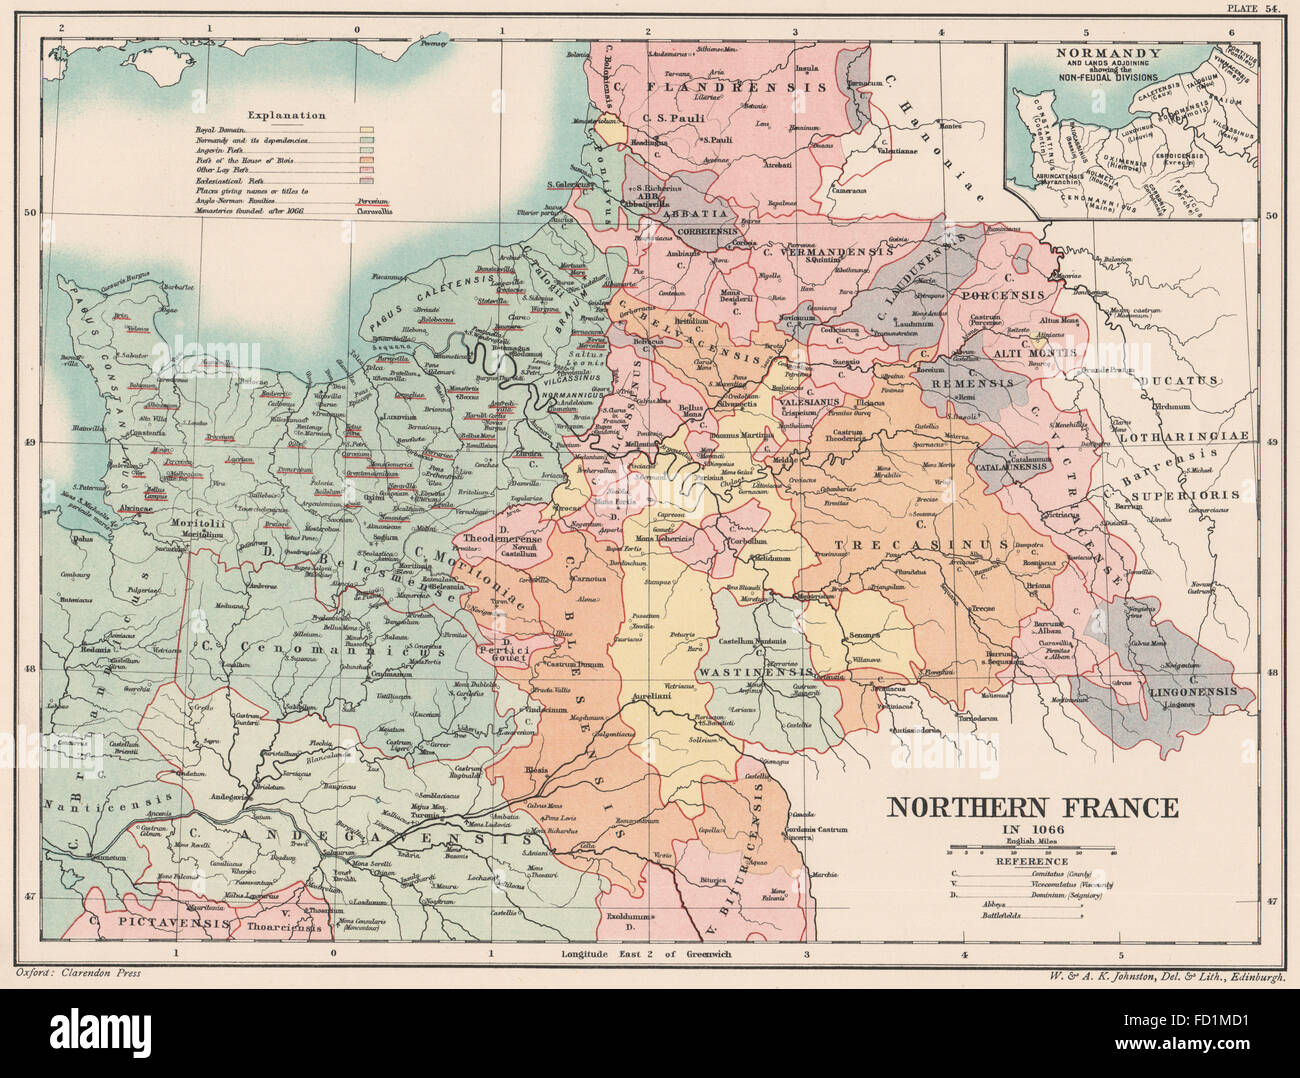 NORTHERN FRANCE 1066: Normandy &c. Non-Feudal divisions, 1902 antique map - Stock Image